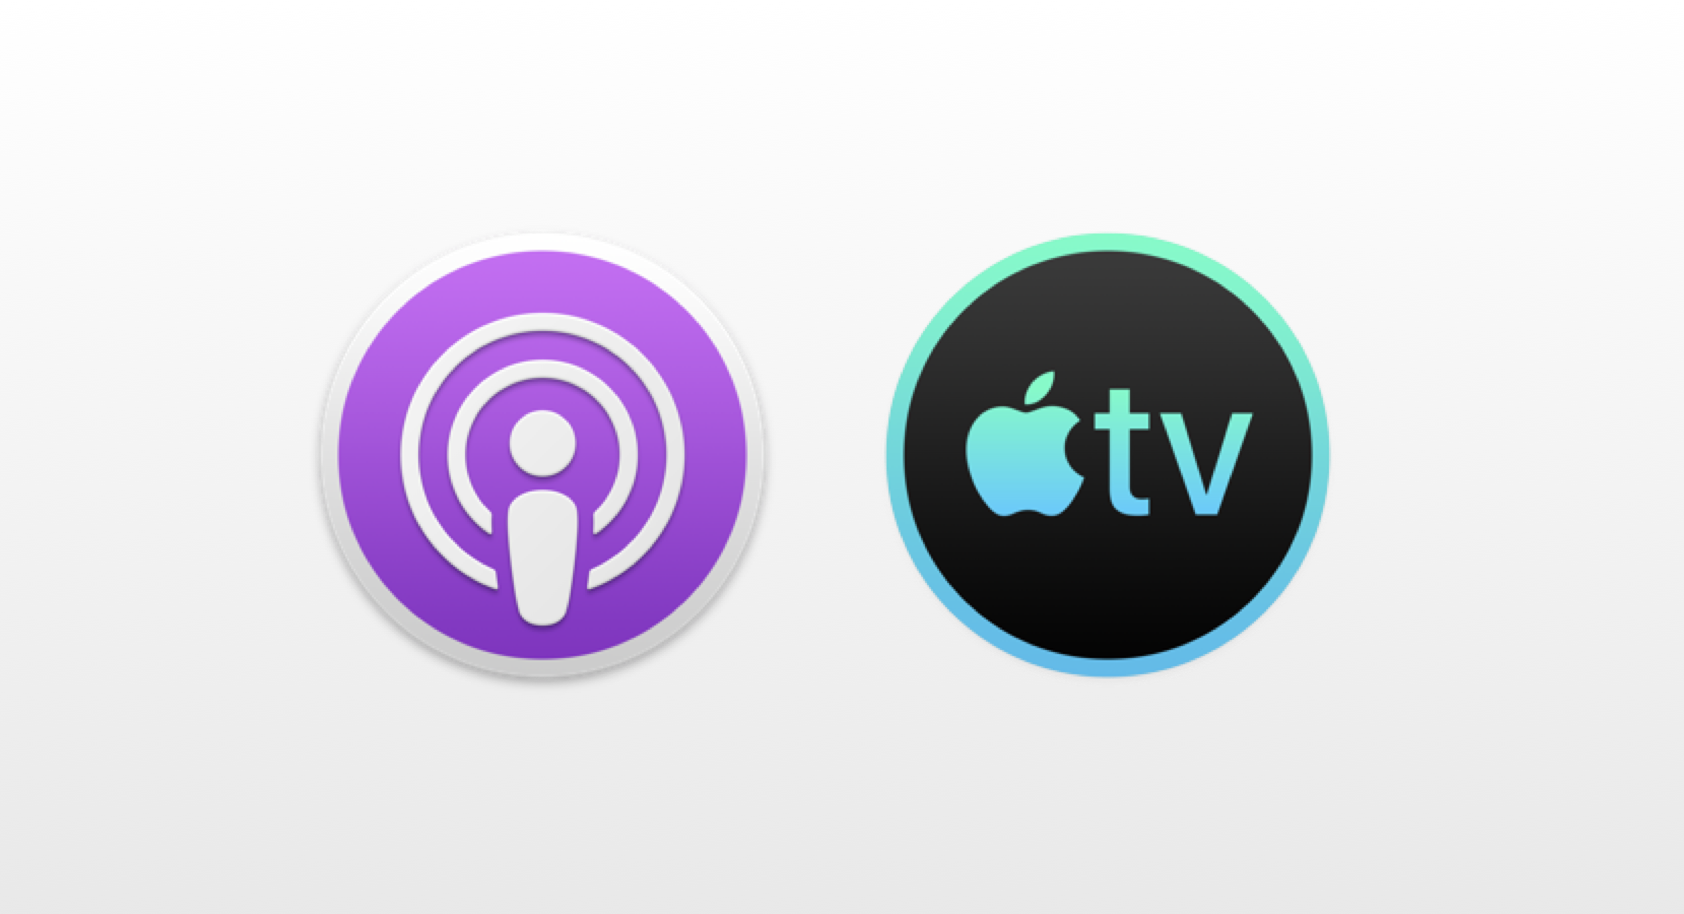 macOS 10 15 to include standalone media apps, splitting